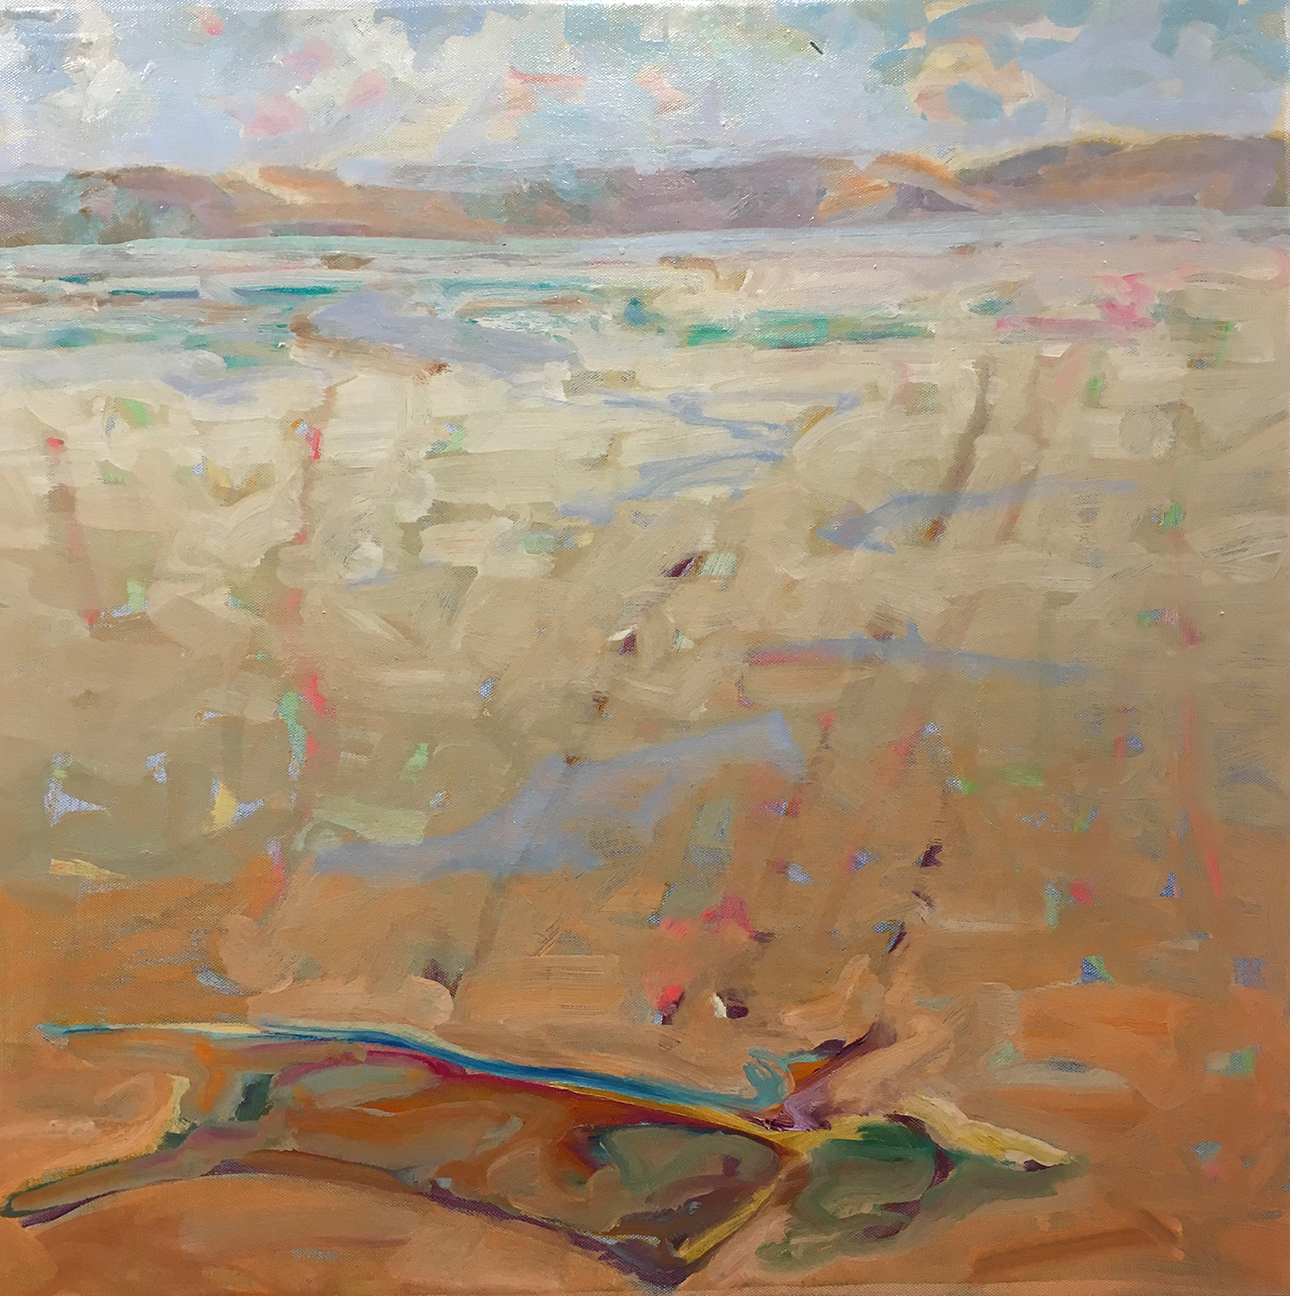 MountainLake02, Oilcanvas, 24x24, MelSmothers2015A, low res.jpg